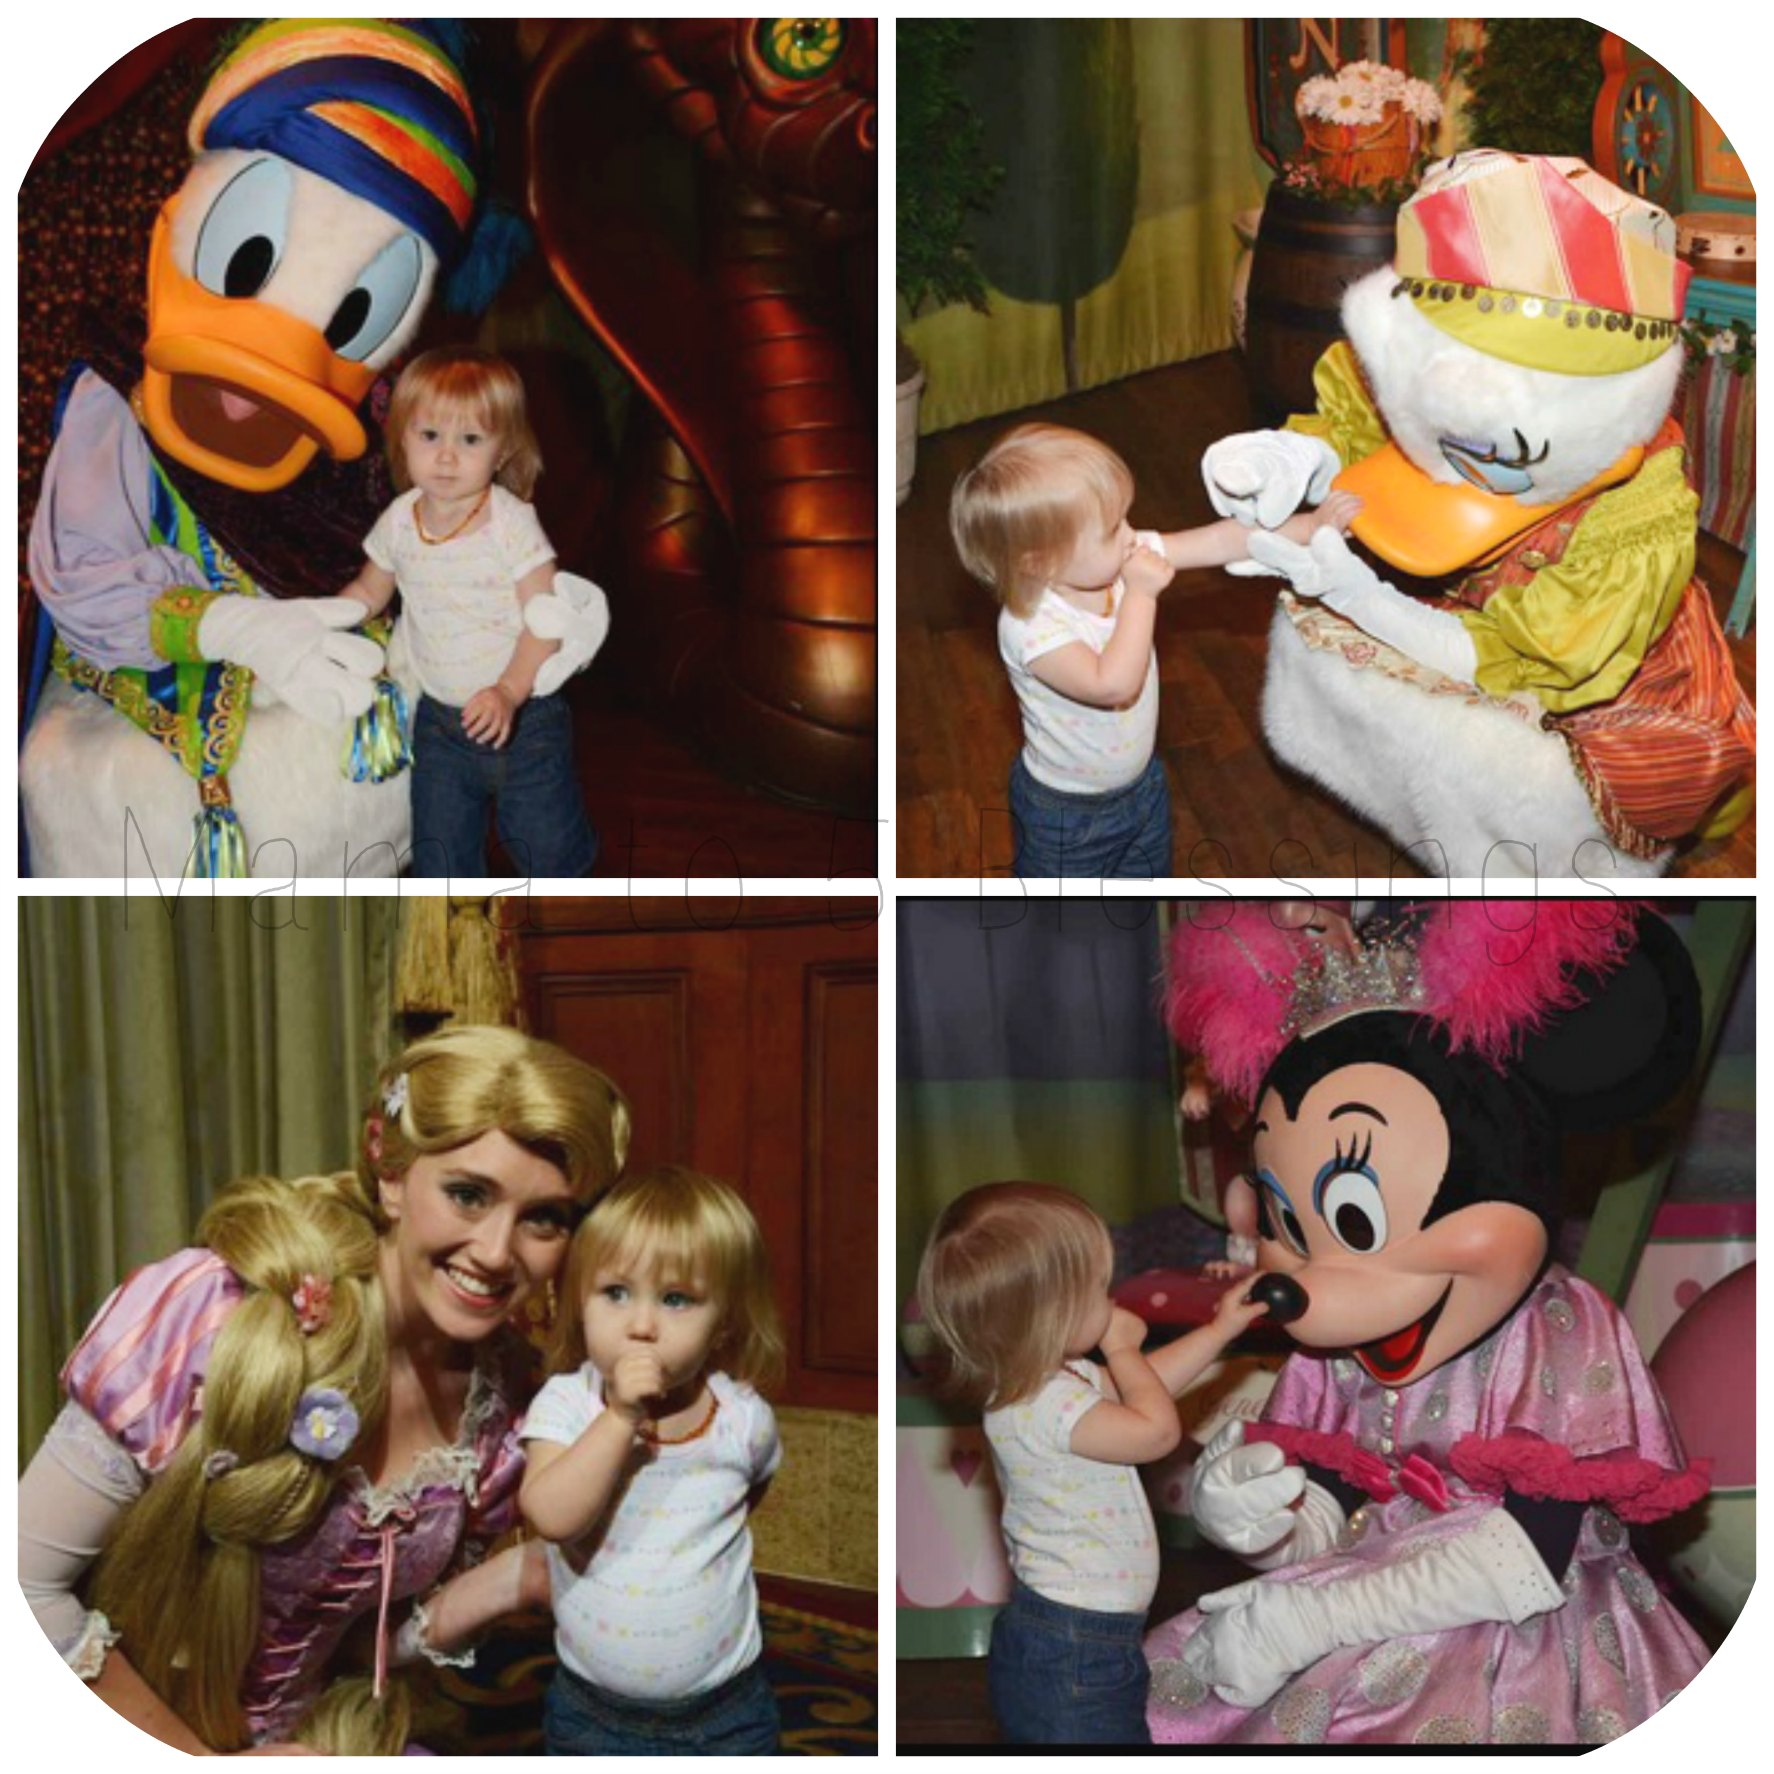 Disney Joy collage